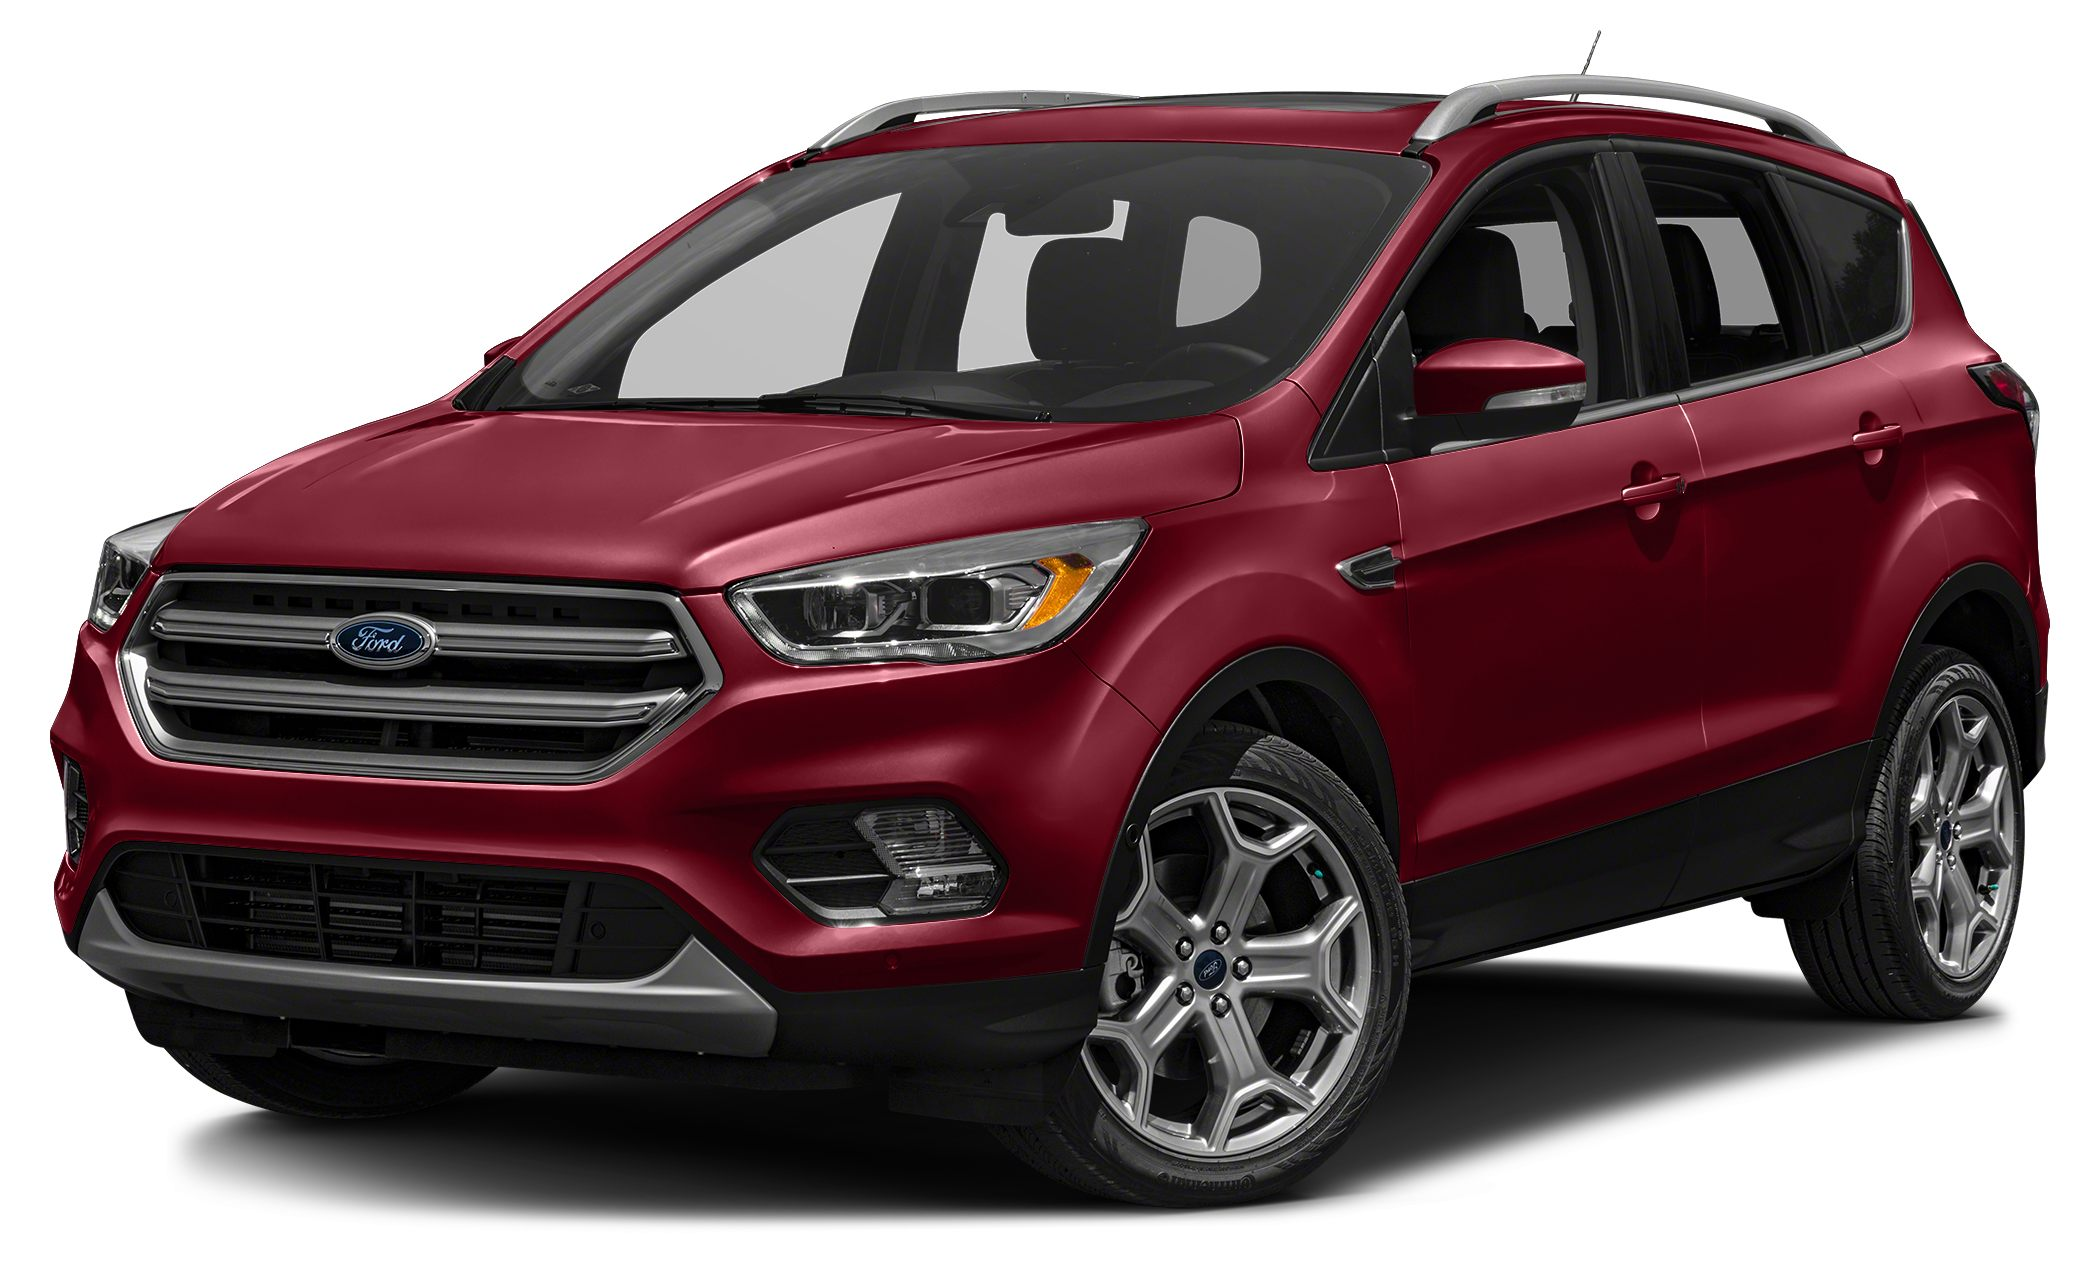 2017 Ford Escape Titanium Ruby Red Metallic 2017 Ford Escape Titanium 4WD 6-Speed Automatic EcoBoo